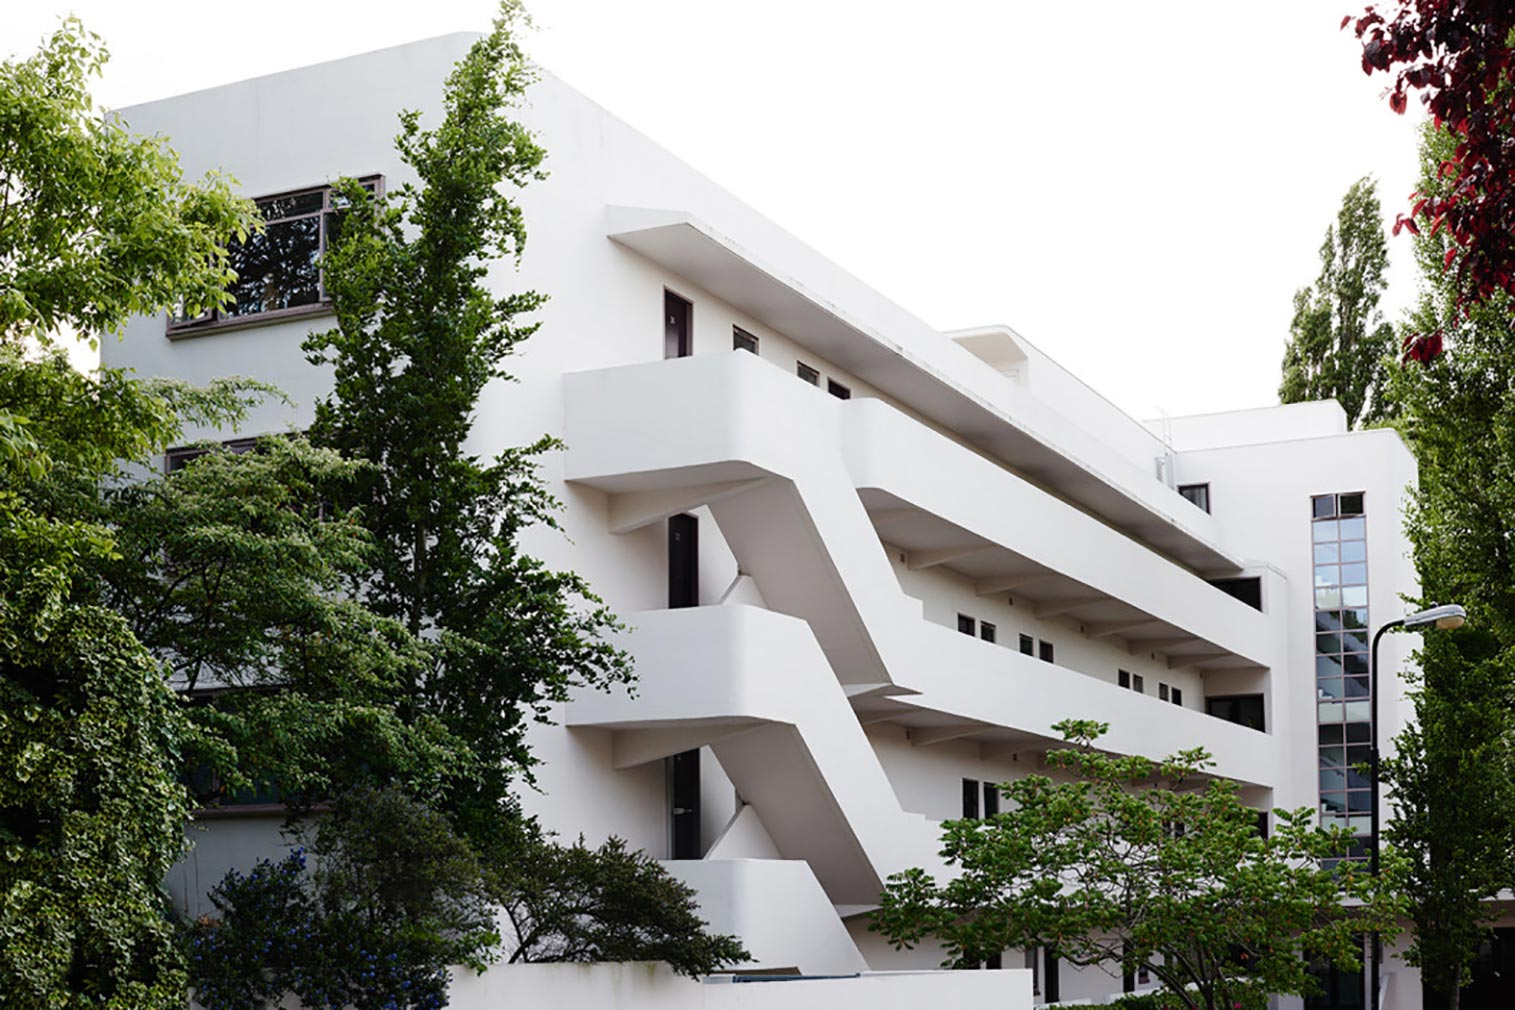 isokon-building-in-london-baker-photography-1050x700